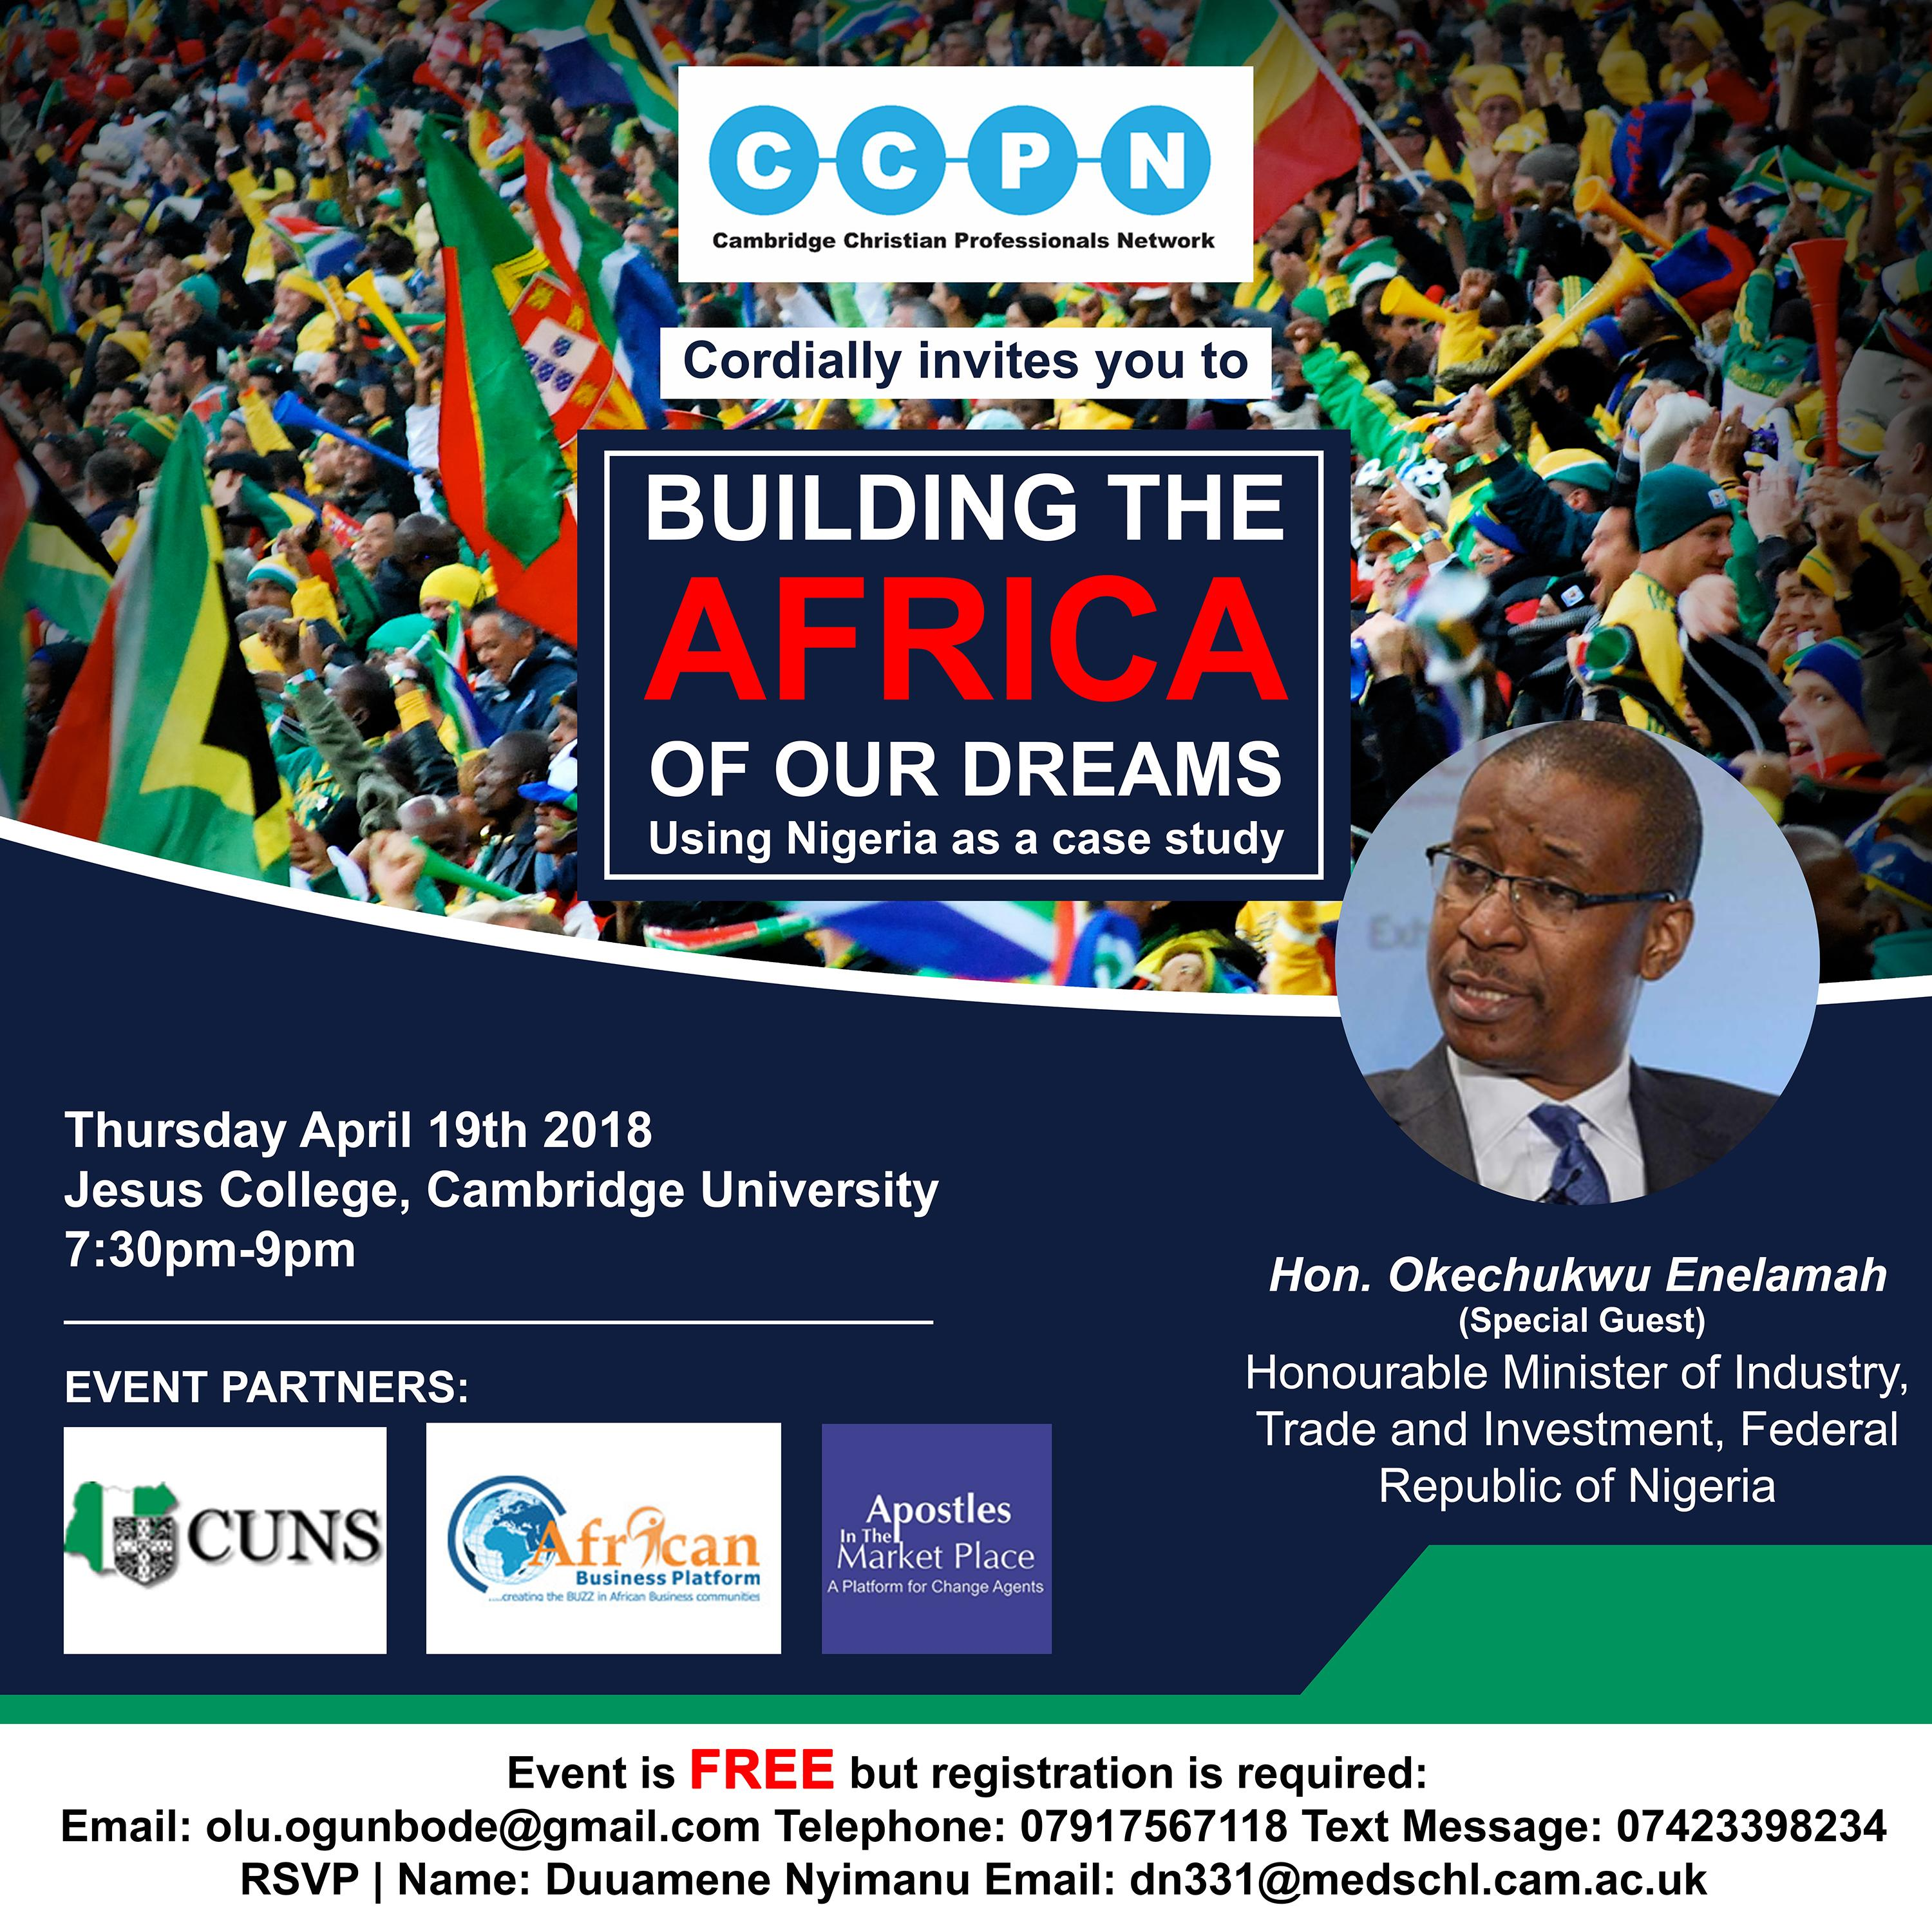 BUILDING THE AFRICA OF OUR DREAMS